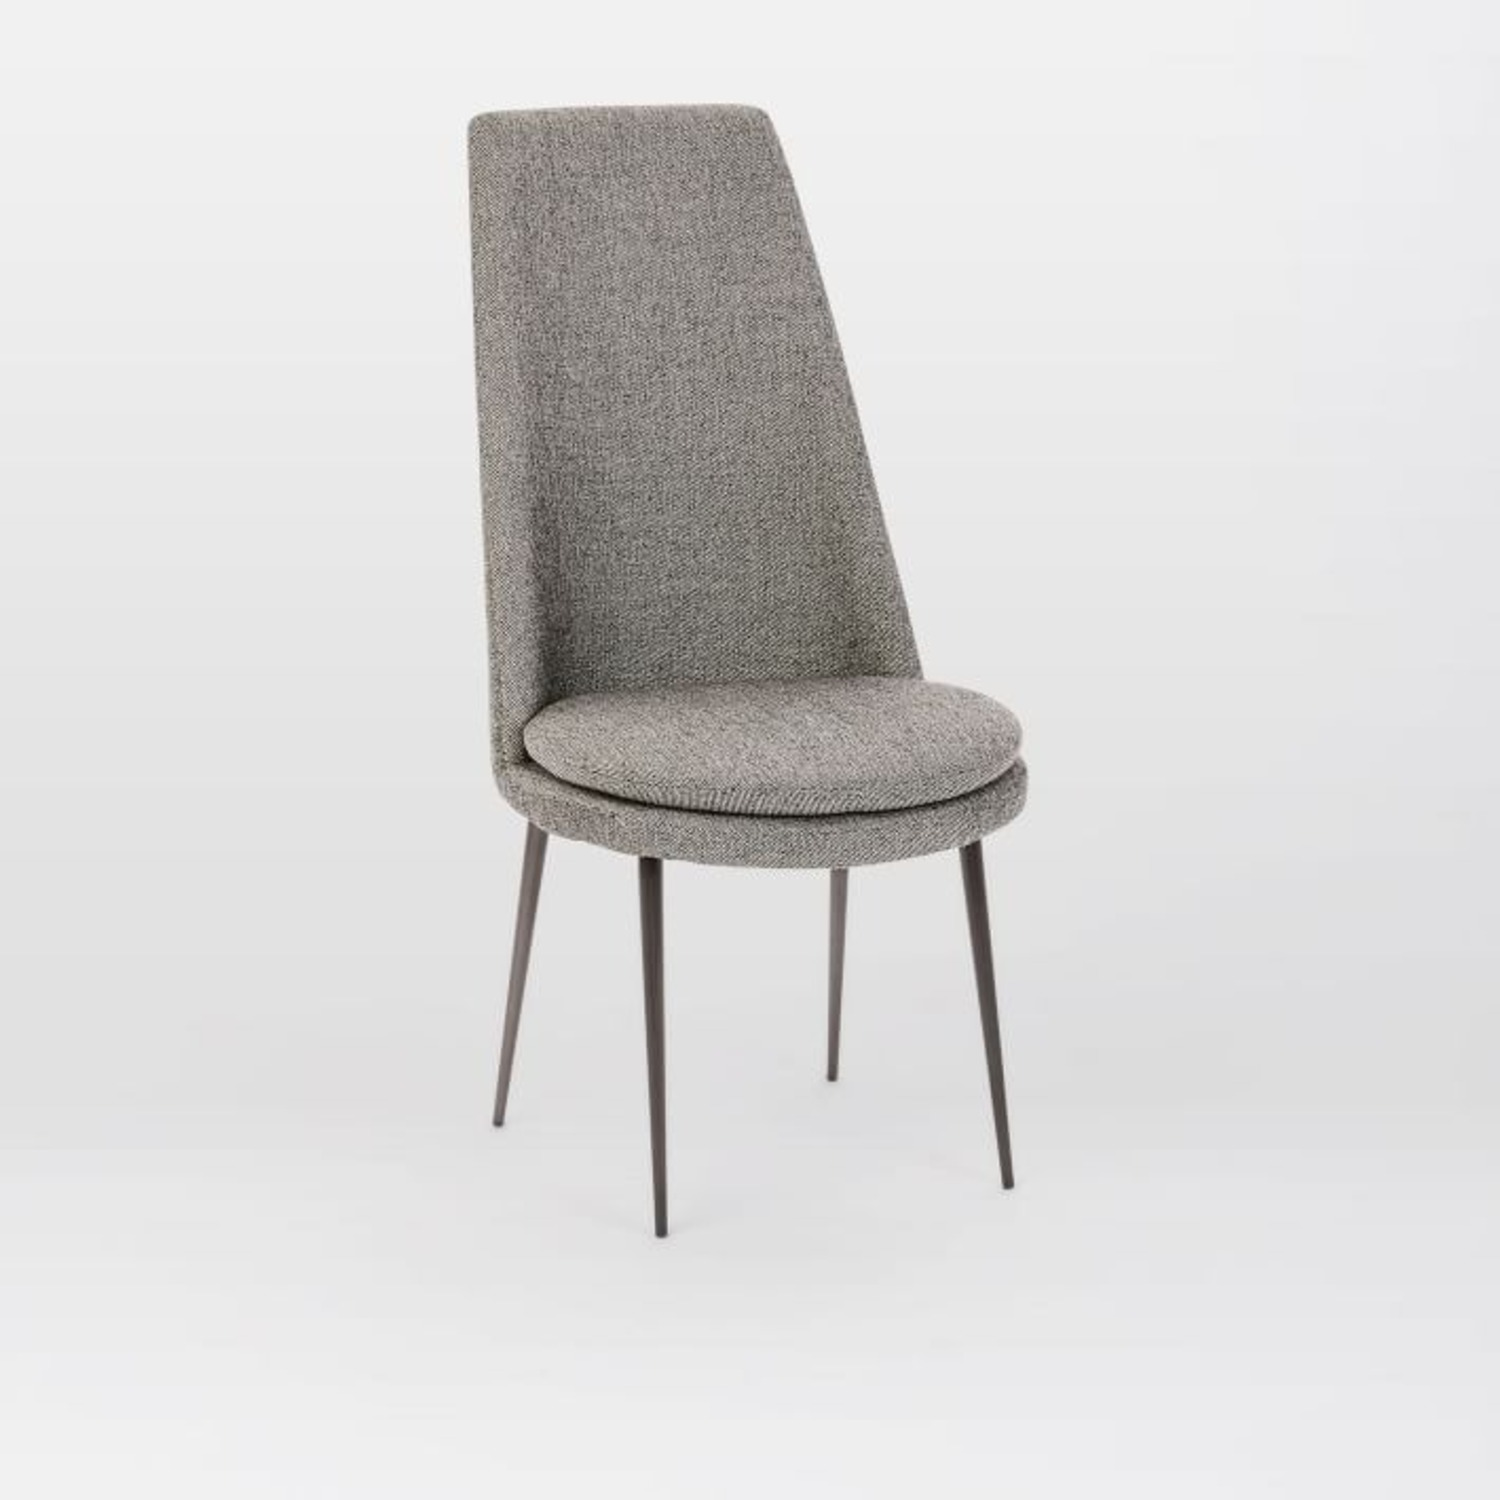 West Elm Finley High-Back Upholstered Dining Chair - image-2